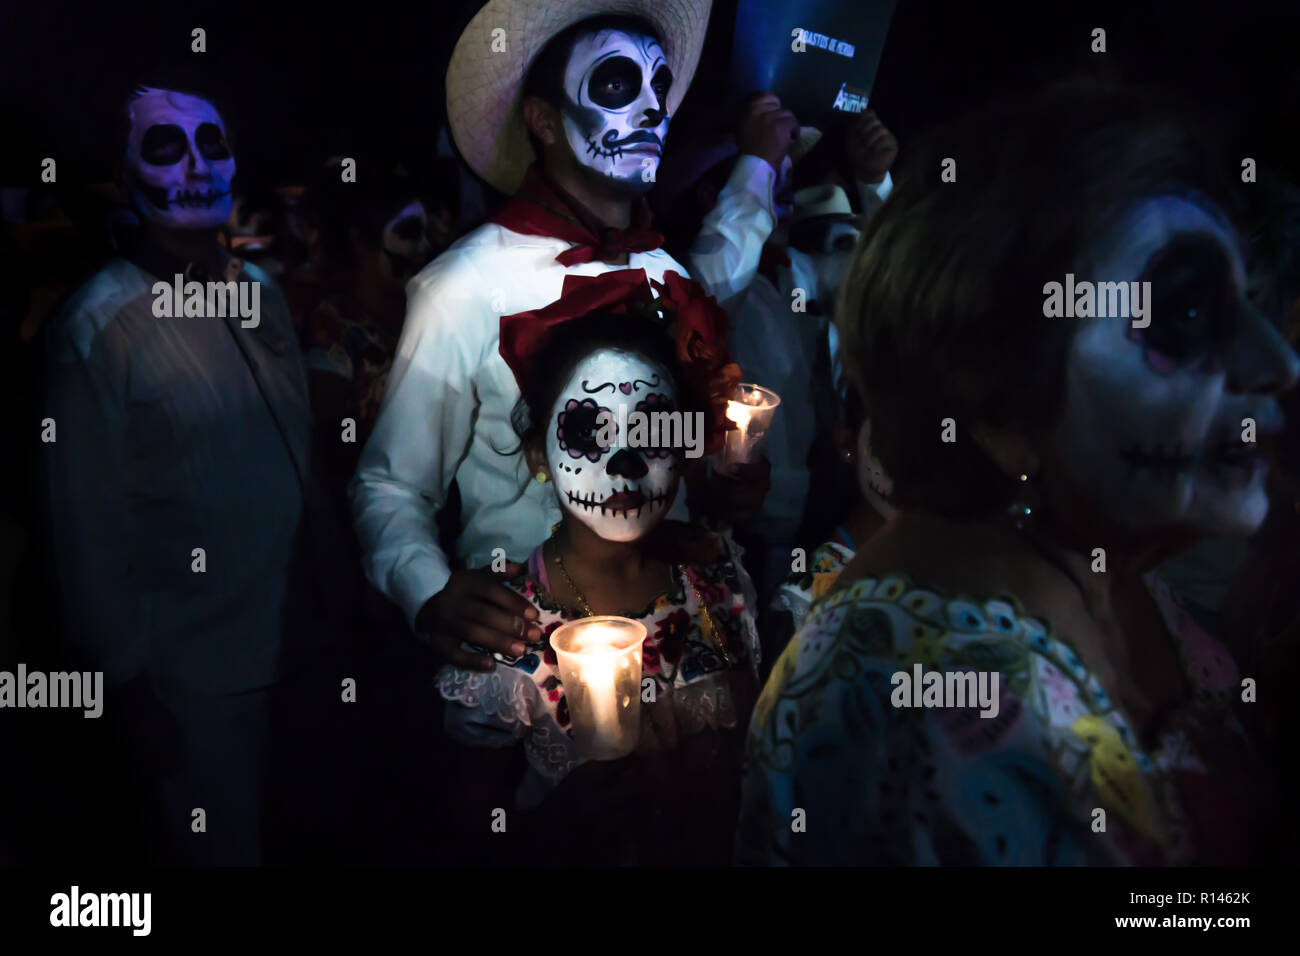 Merida, Cementerio General, Mexico - 31 October 2018: Customed participants of the parade with skull make-up, with a cowboy man and kid with flowers a - Stock Image